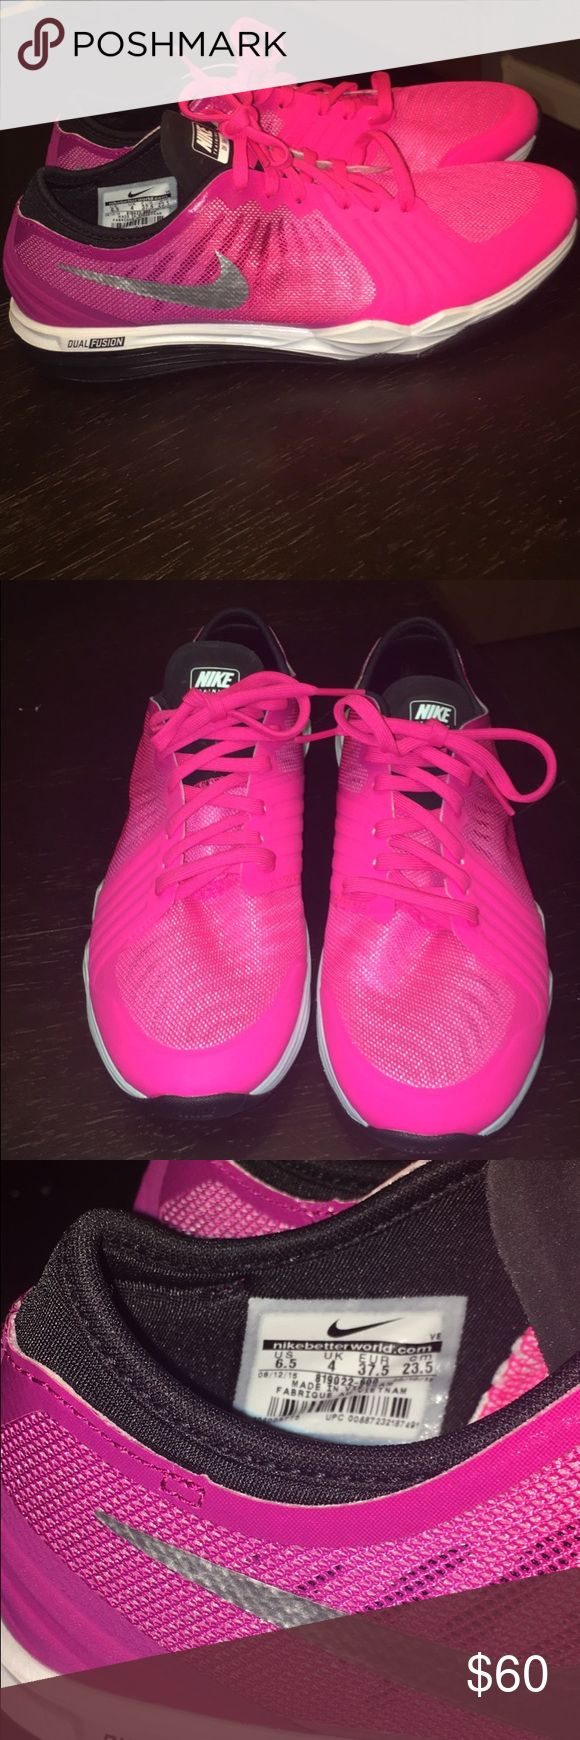 NEW Nike dual fusion hot pink gym shoes NEW Nike dual fusion hot pink gym shoes. Memory foam sides. Fit me perfect and I wear a 7 Nike Shoes Athletic Shoes